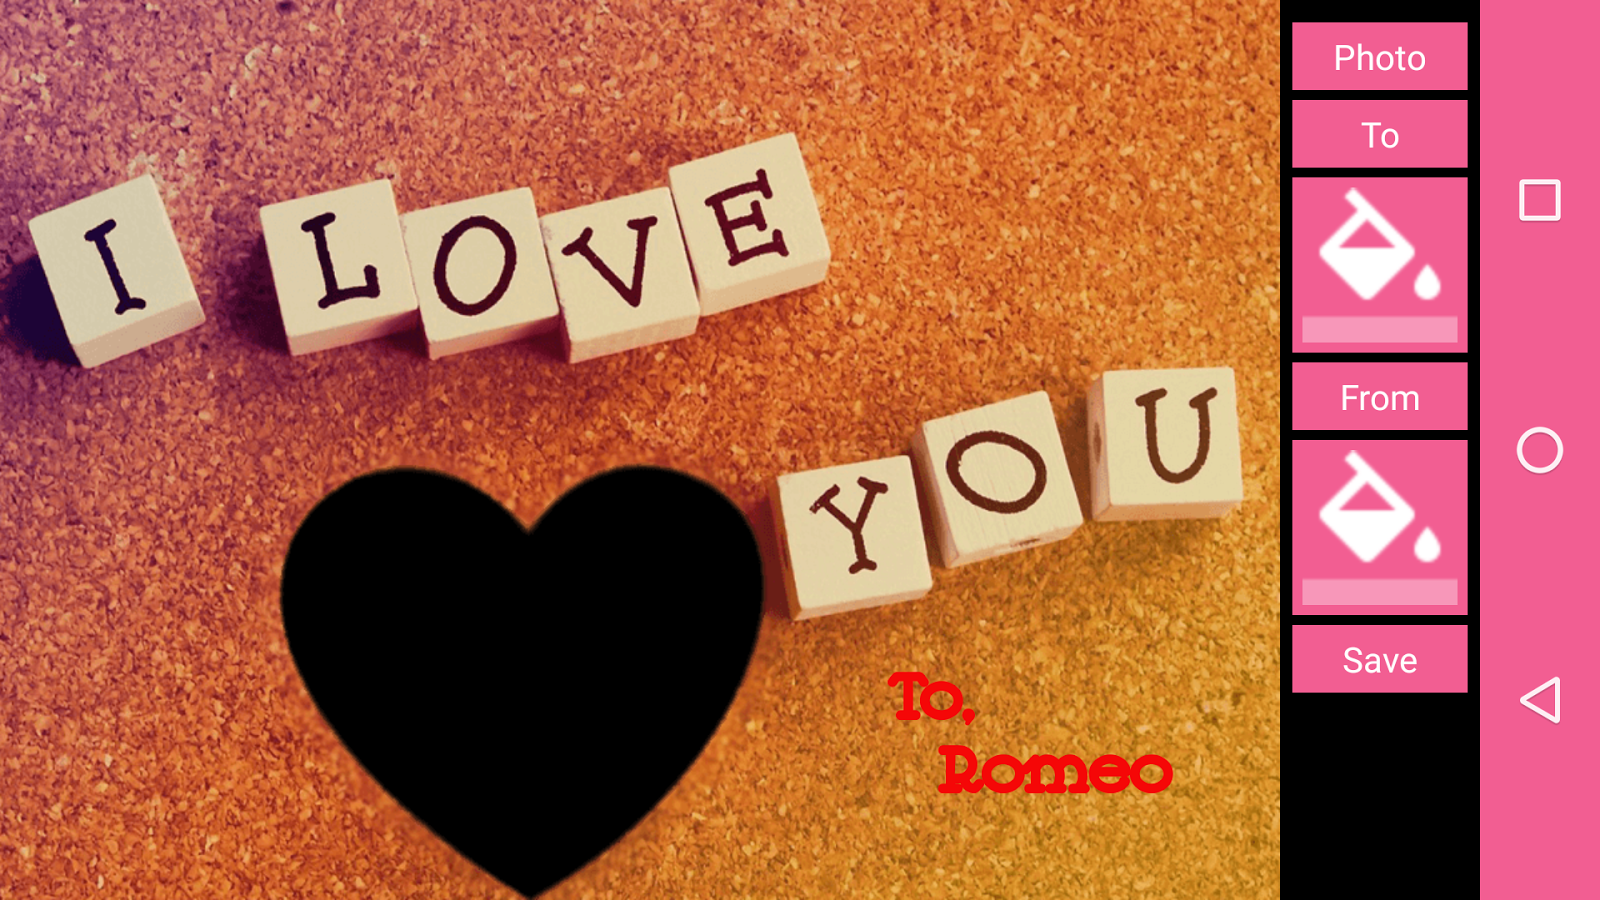 Download I LOVE YOU Photo Frames NEW HD App for android